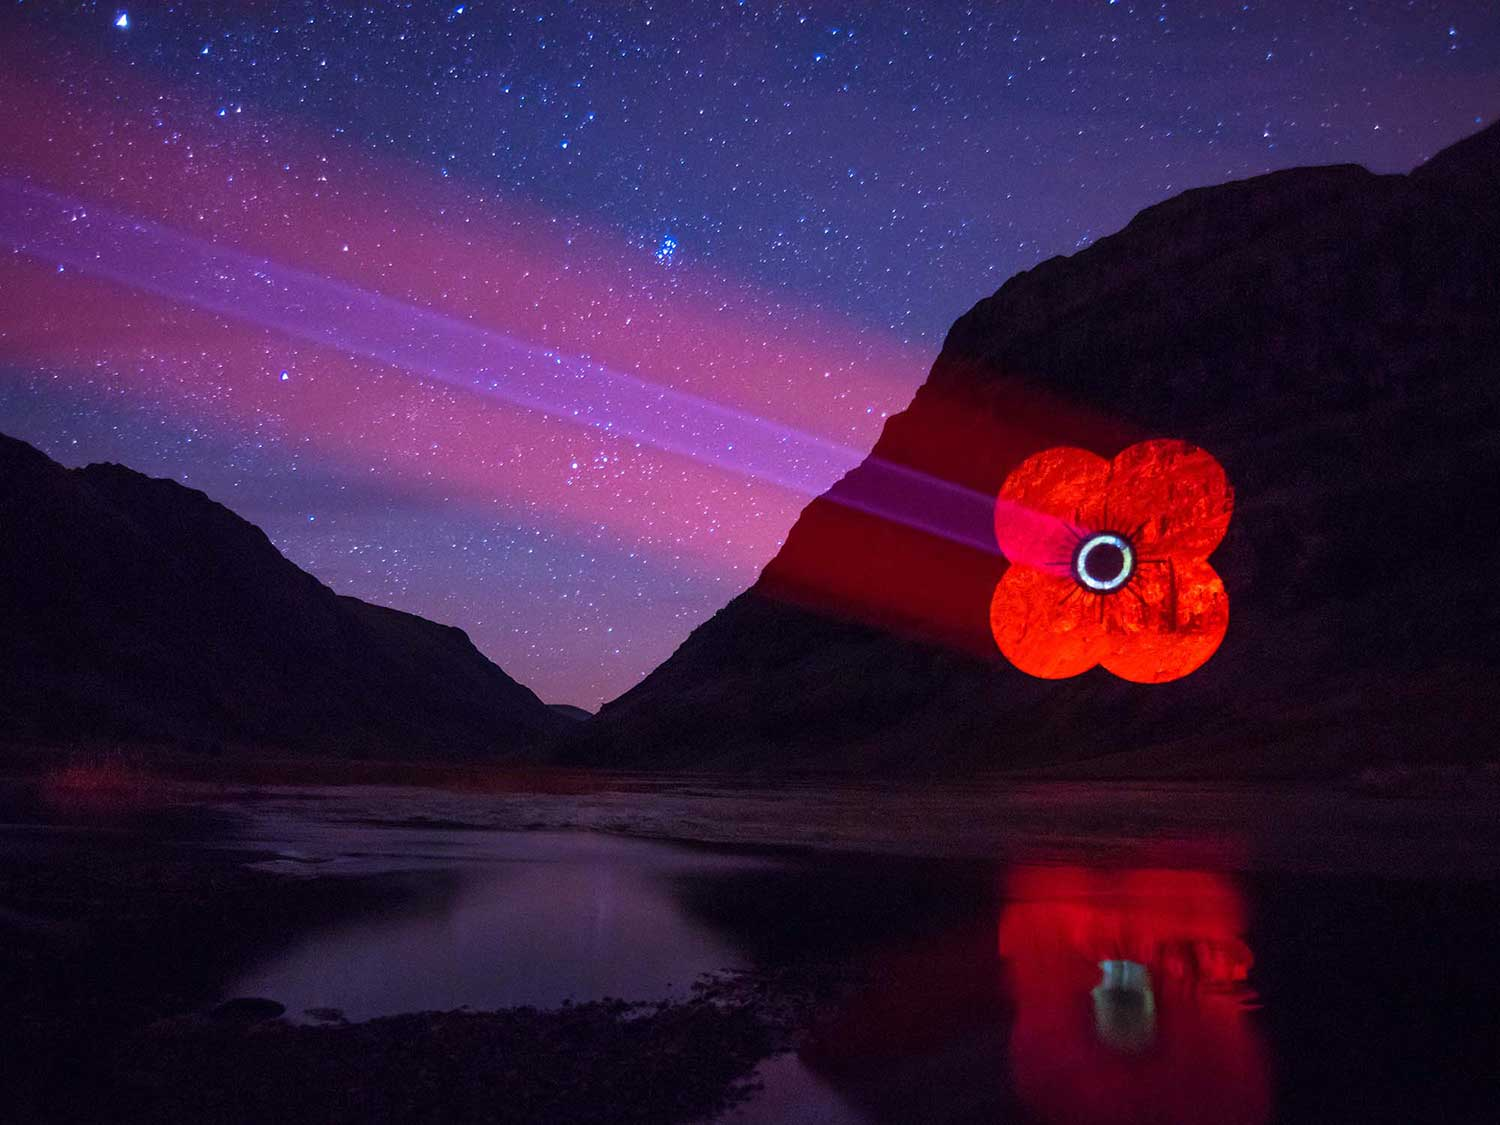 Poppy Scotland logo Guerrilla Projections onto Mountain in Glencoe